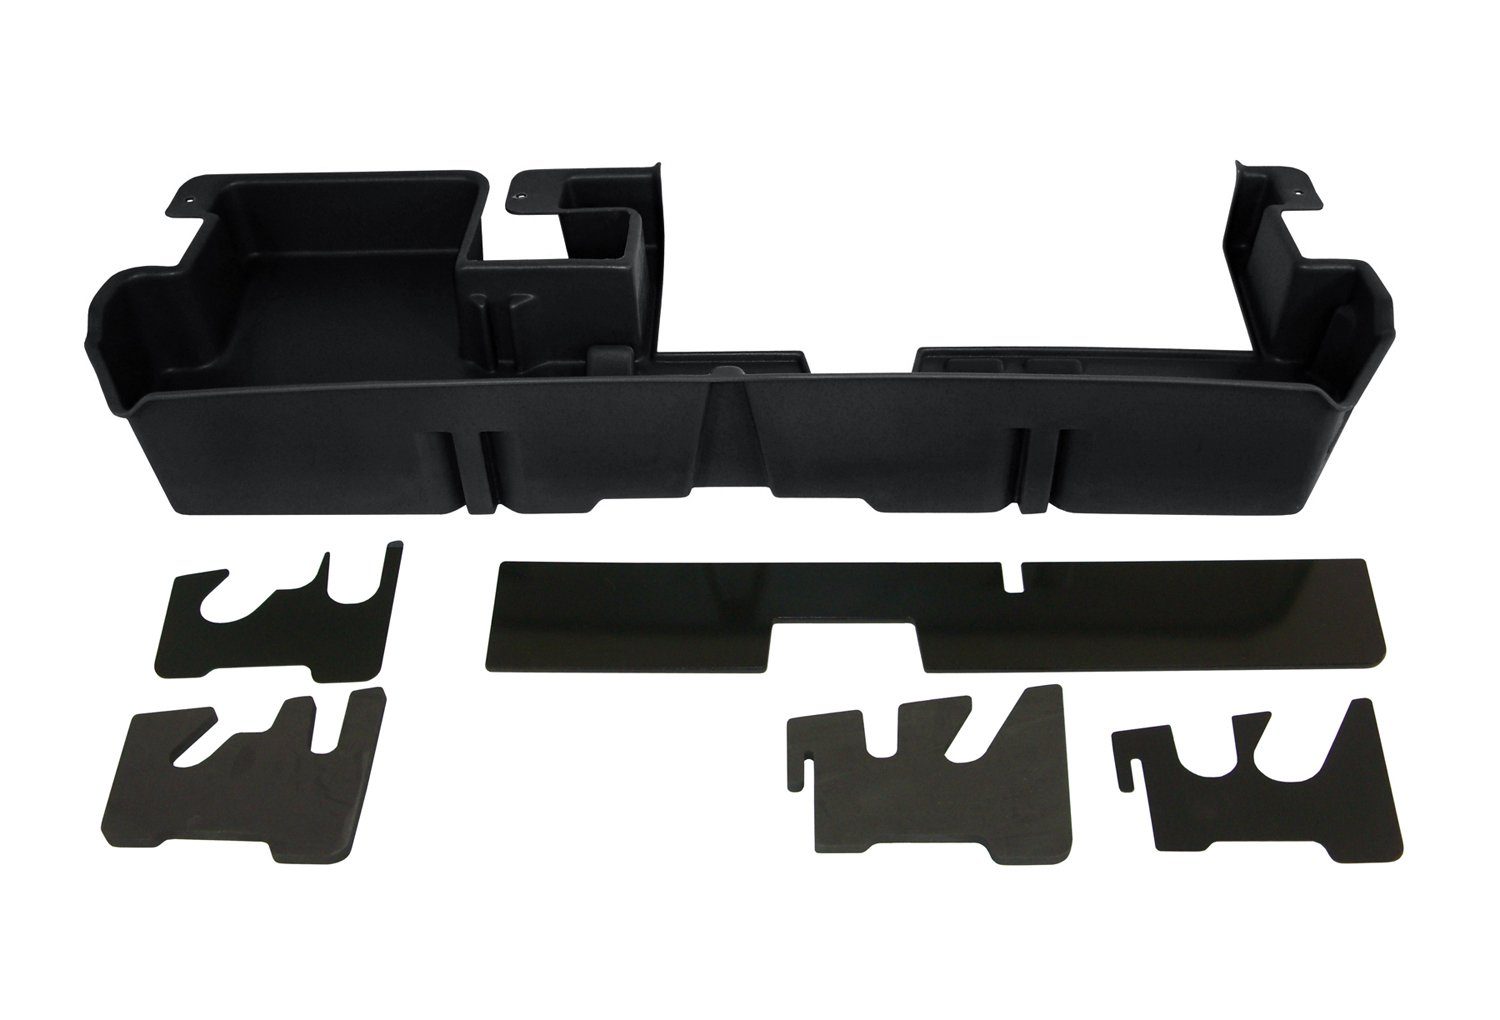 DU-HA Under Seat Storage Fits 07-17 Toyota Tundra Double Cab with Subwoofer, Black, Part #60061 by DU-HA